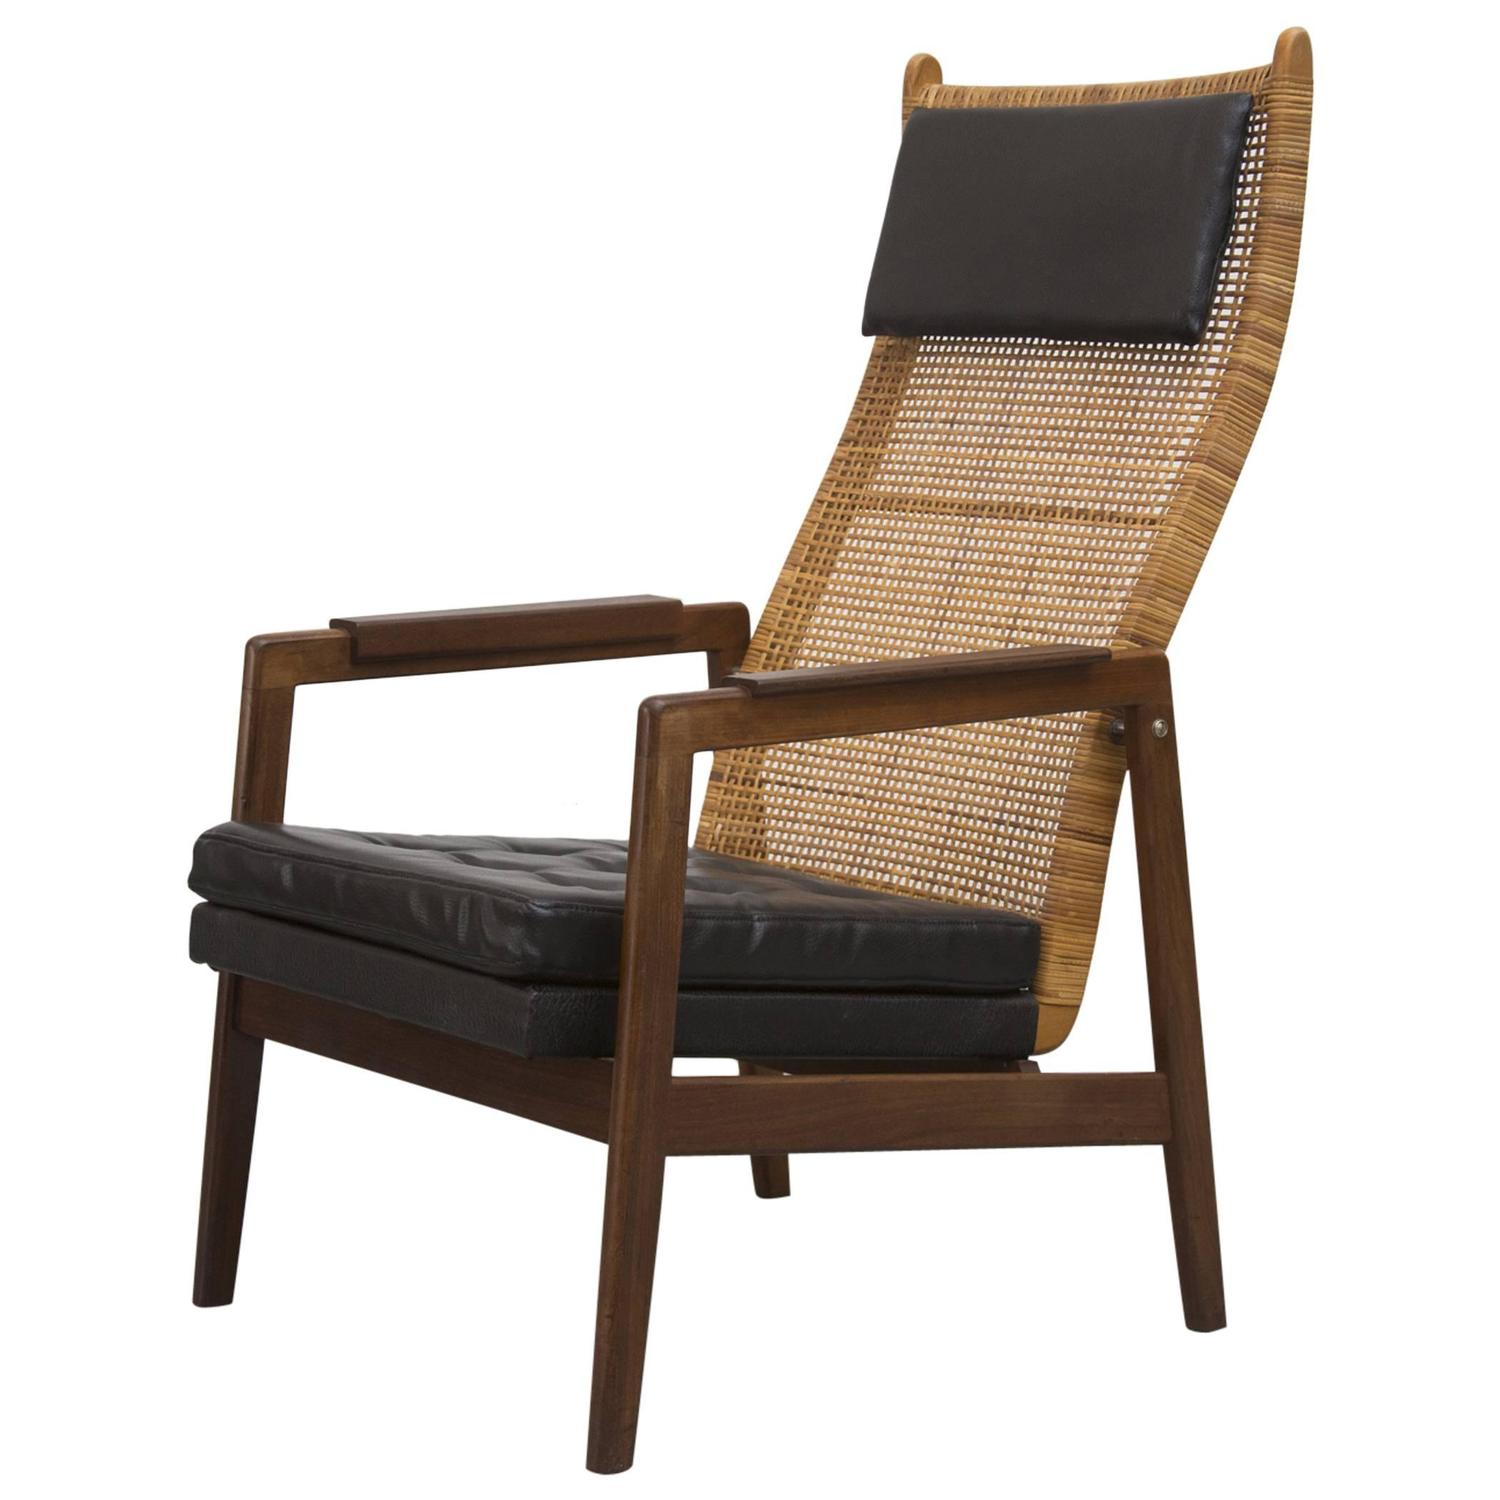 P J Muntendam Mid Century Rattan Lounge Chair at 1stdibs